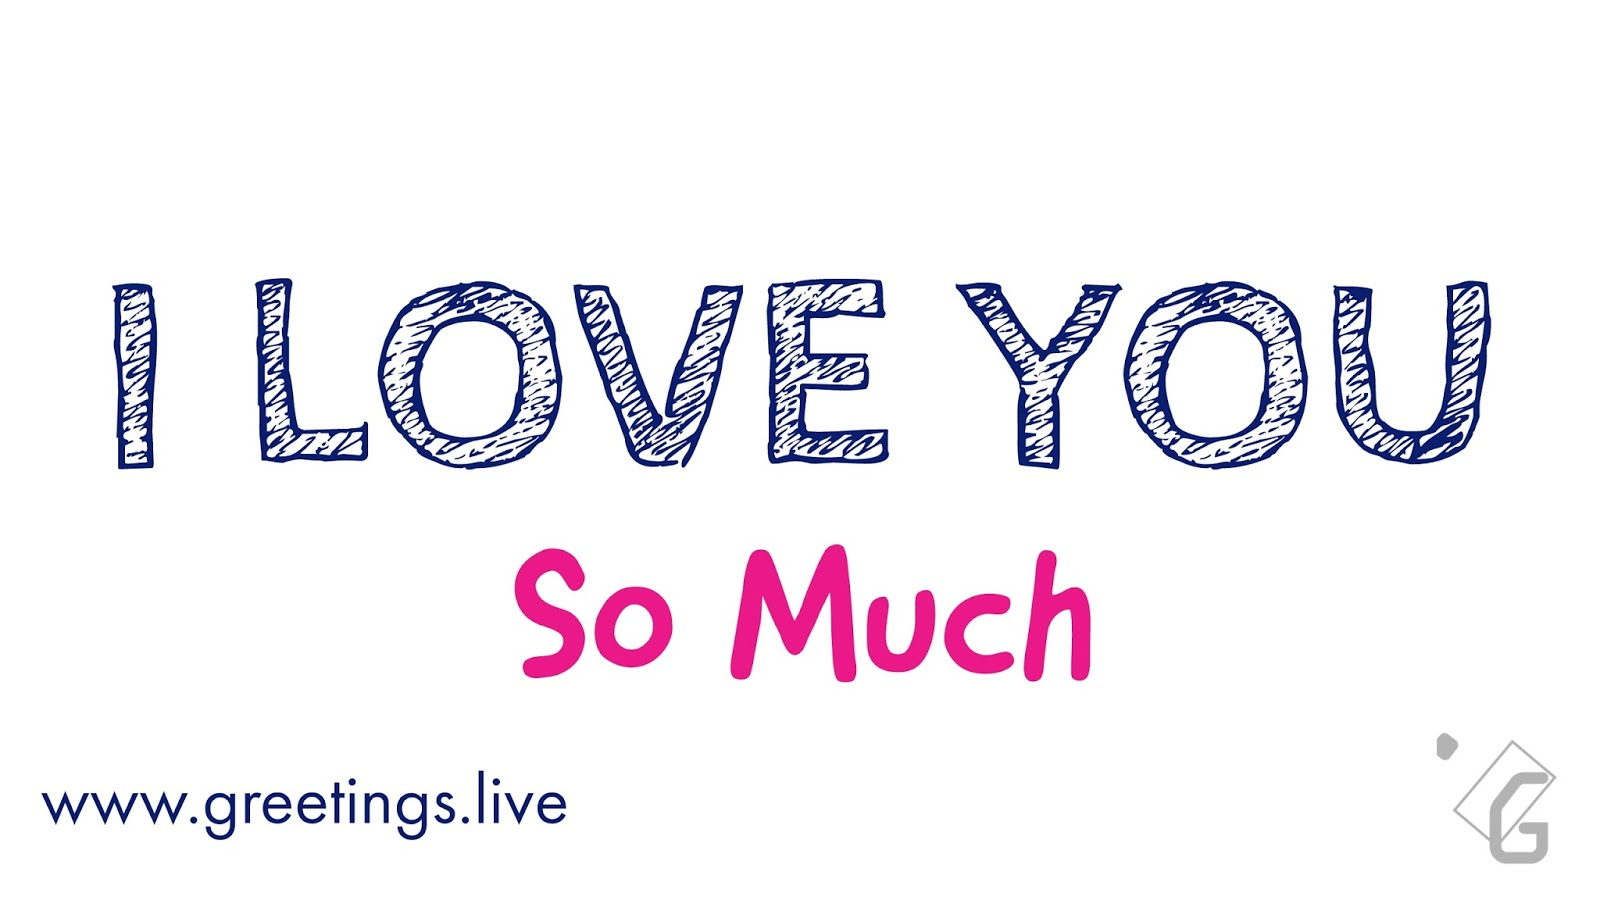 Greetingsve hd images love smile birthday wishes free download i i love you so much love greetings kristyandbryce Image collections